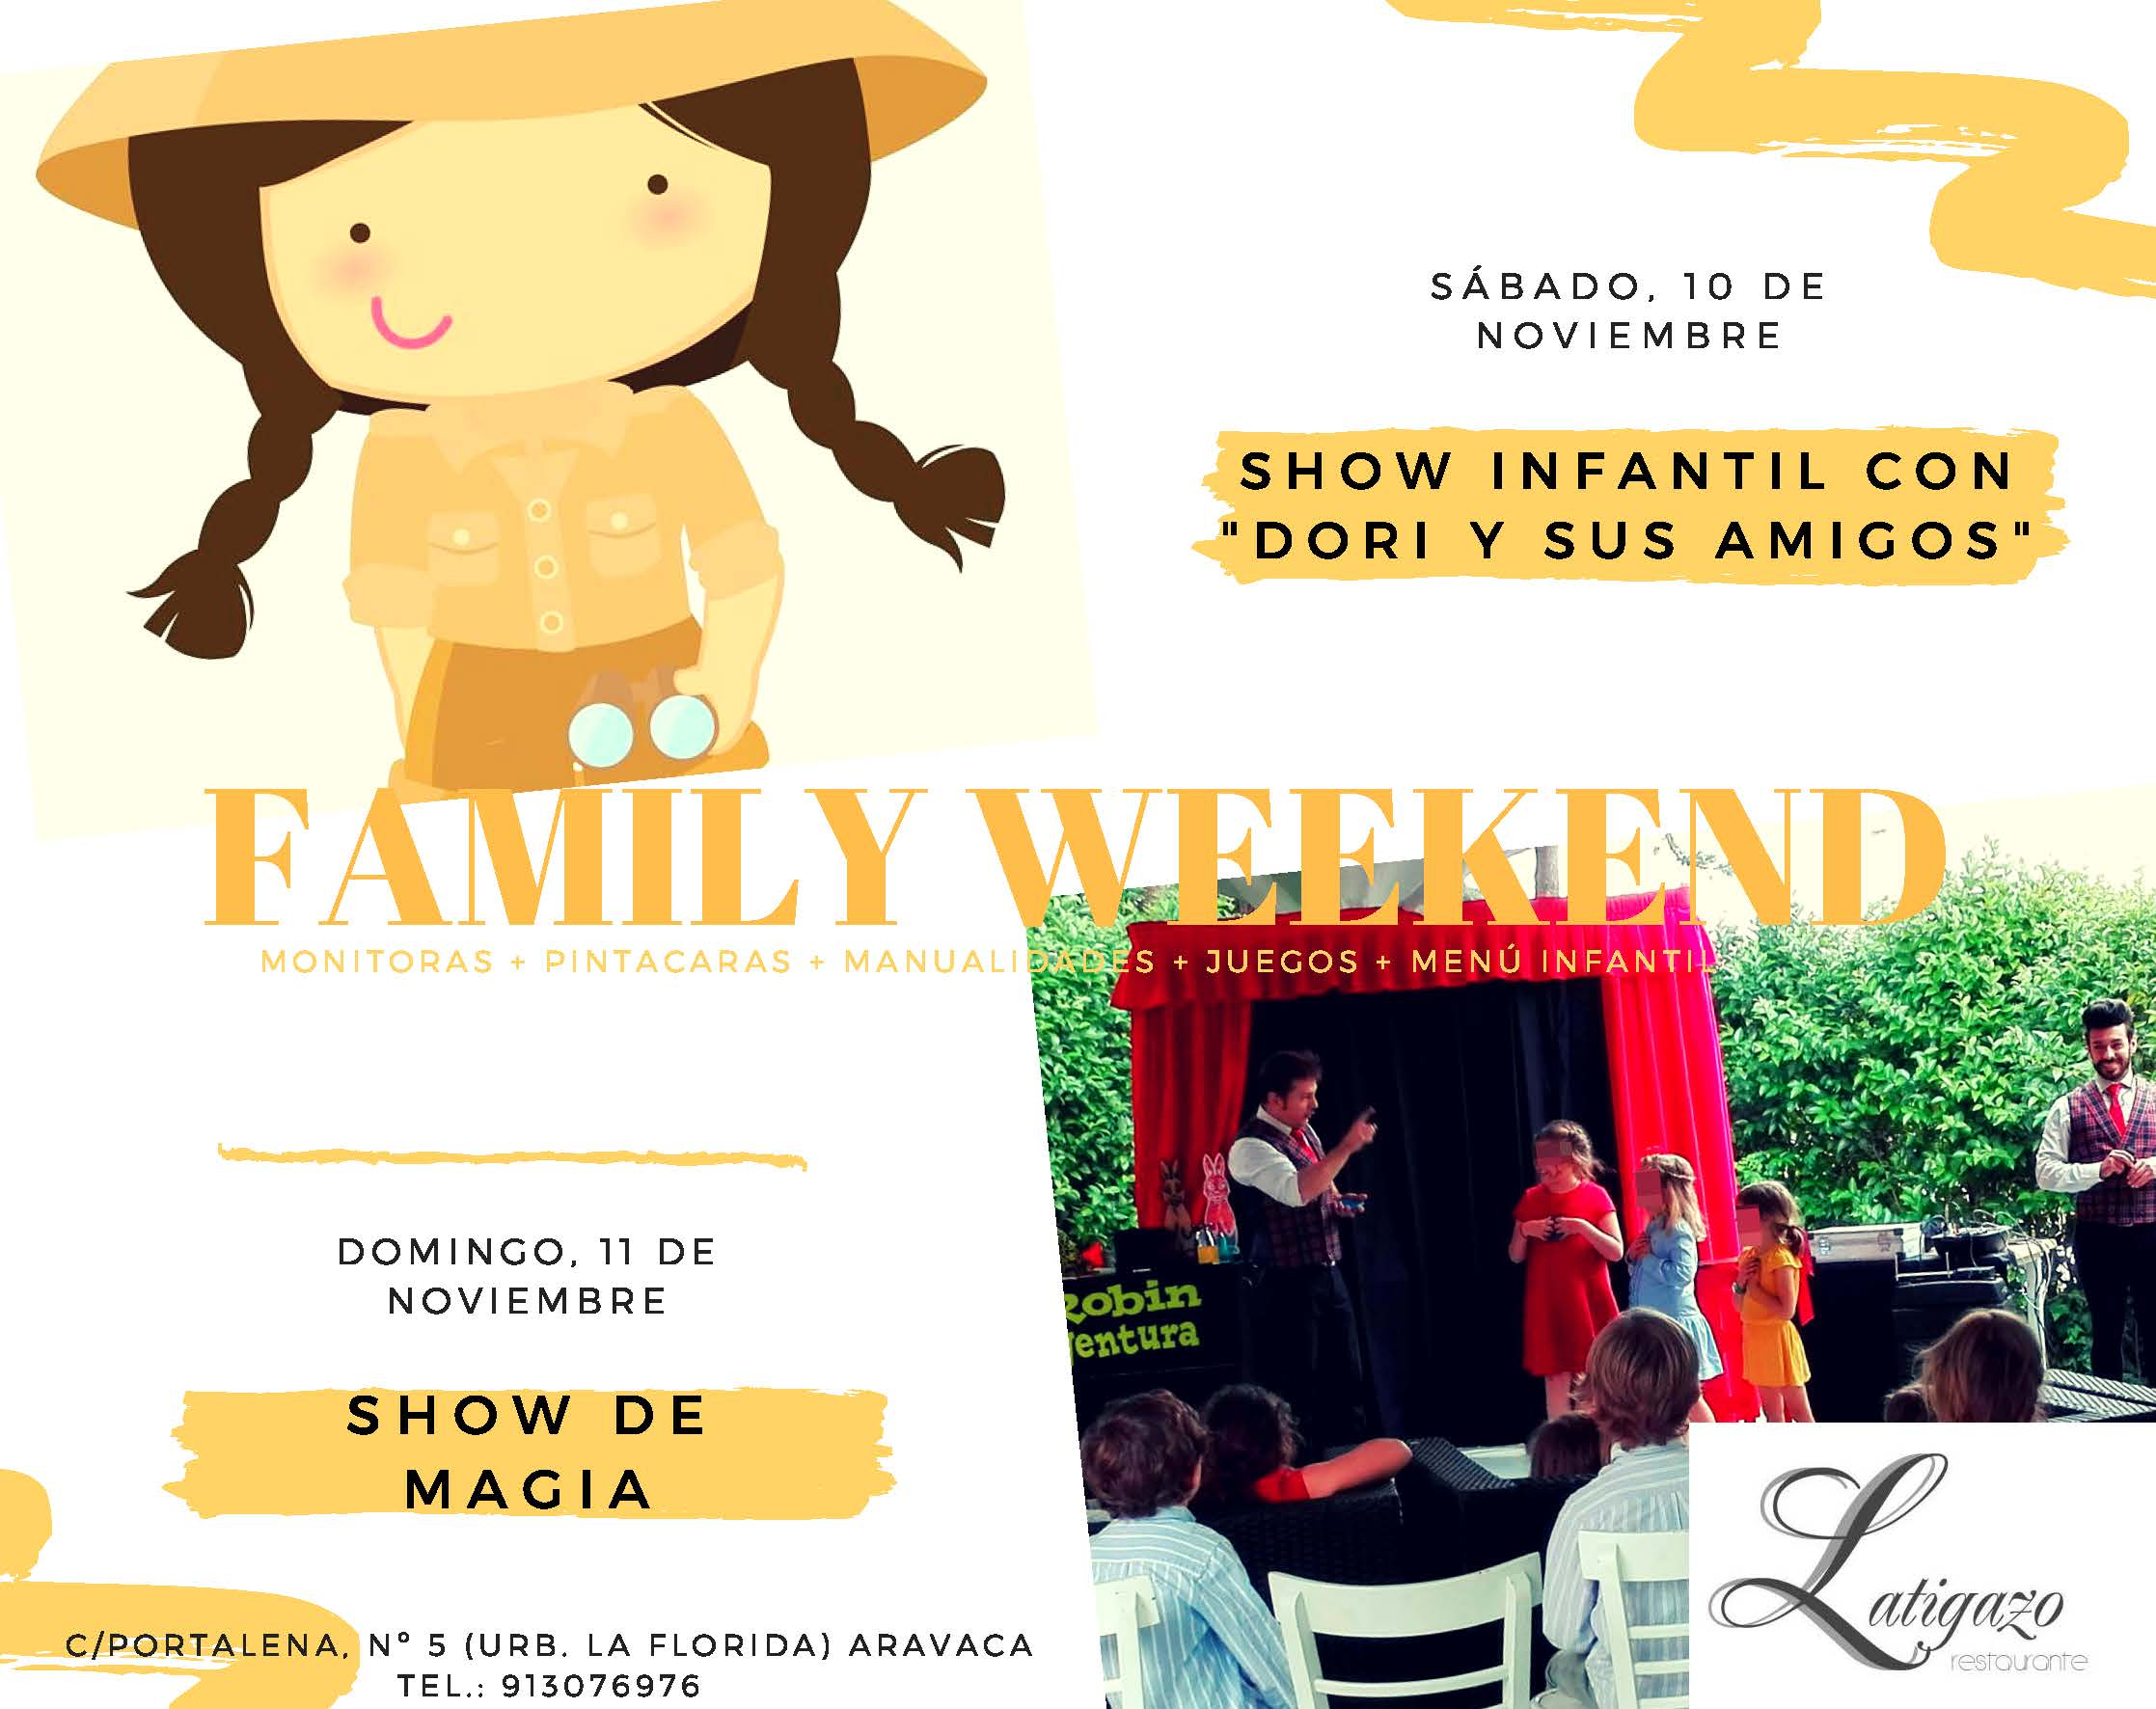 Family Weekend 10_11 nov_2018.jpg